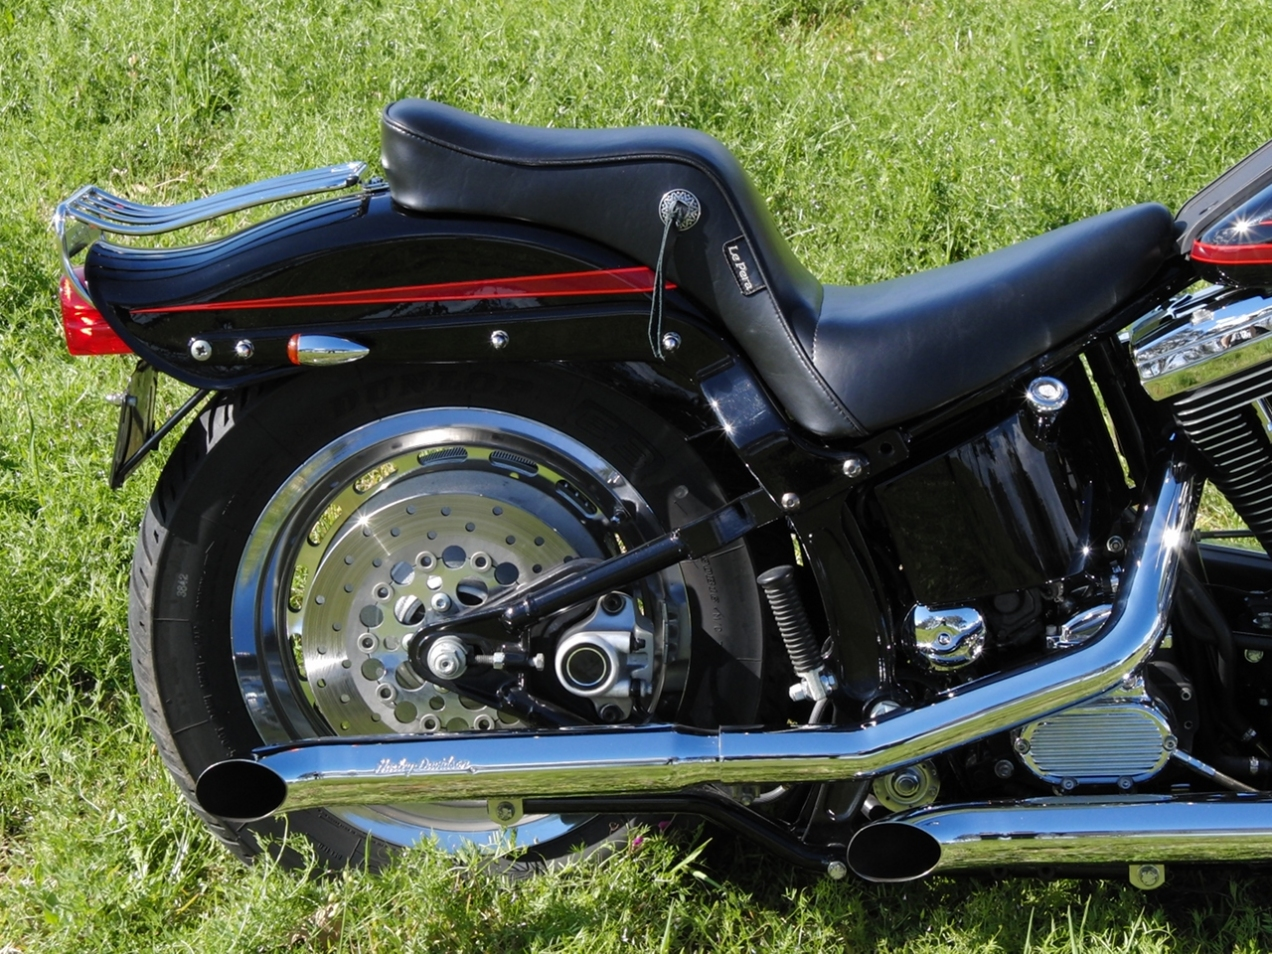 harley-davidson-softail-springer-1995-bad-boy-FXSTSB-evolution-1340-carlini-evil-apehangers-lepera-le-pera-cherokee-seat-jeremiah-watt-slotted-concho-joker-machine-mirrors-psalmistice_CIMG2838